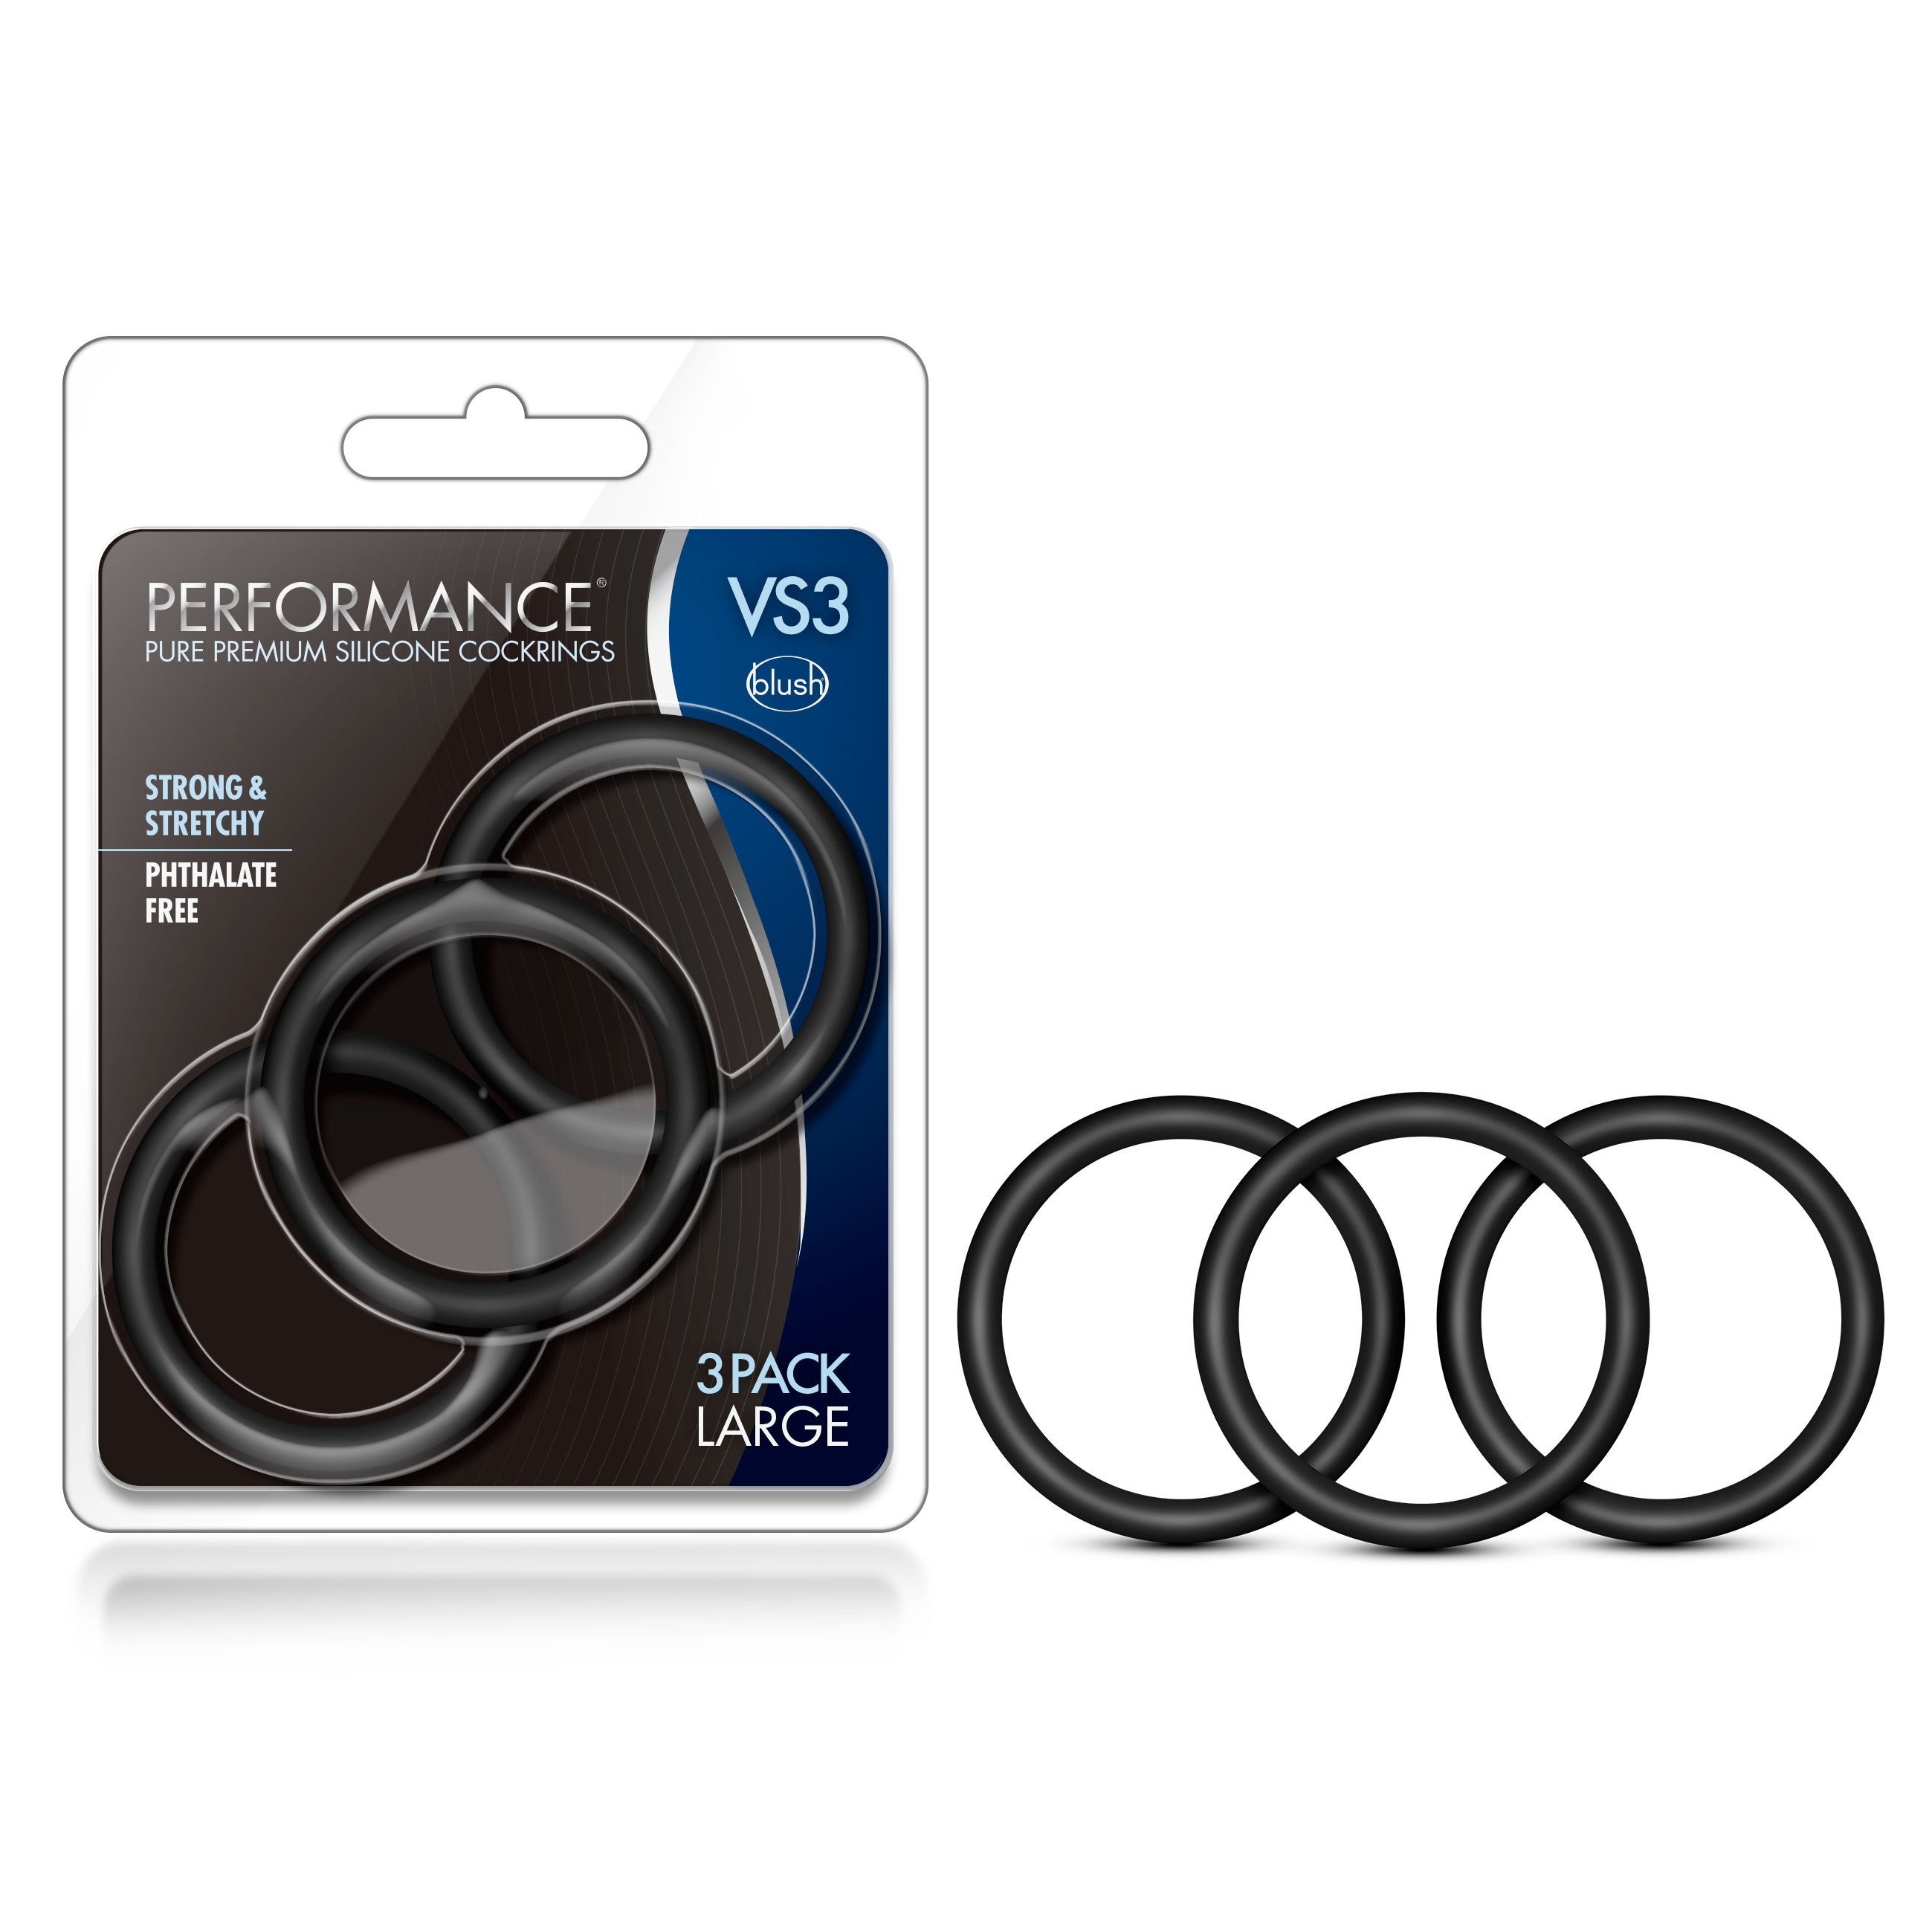 Performance - VS3 Pure Premium Silicone Cock Rings - Large - Black